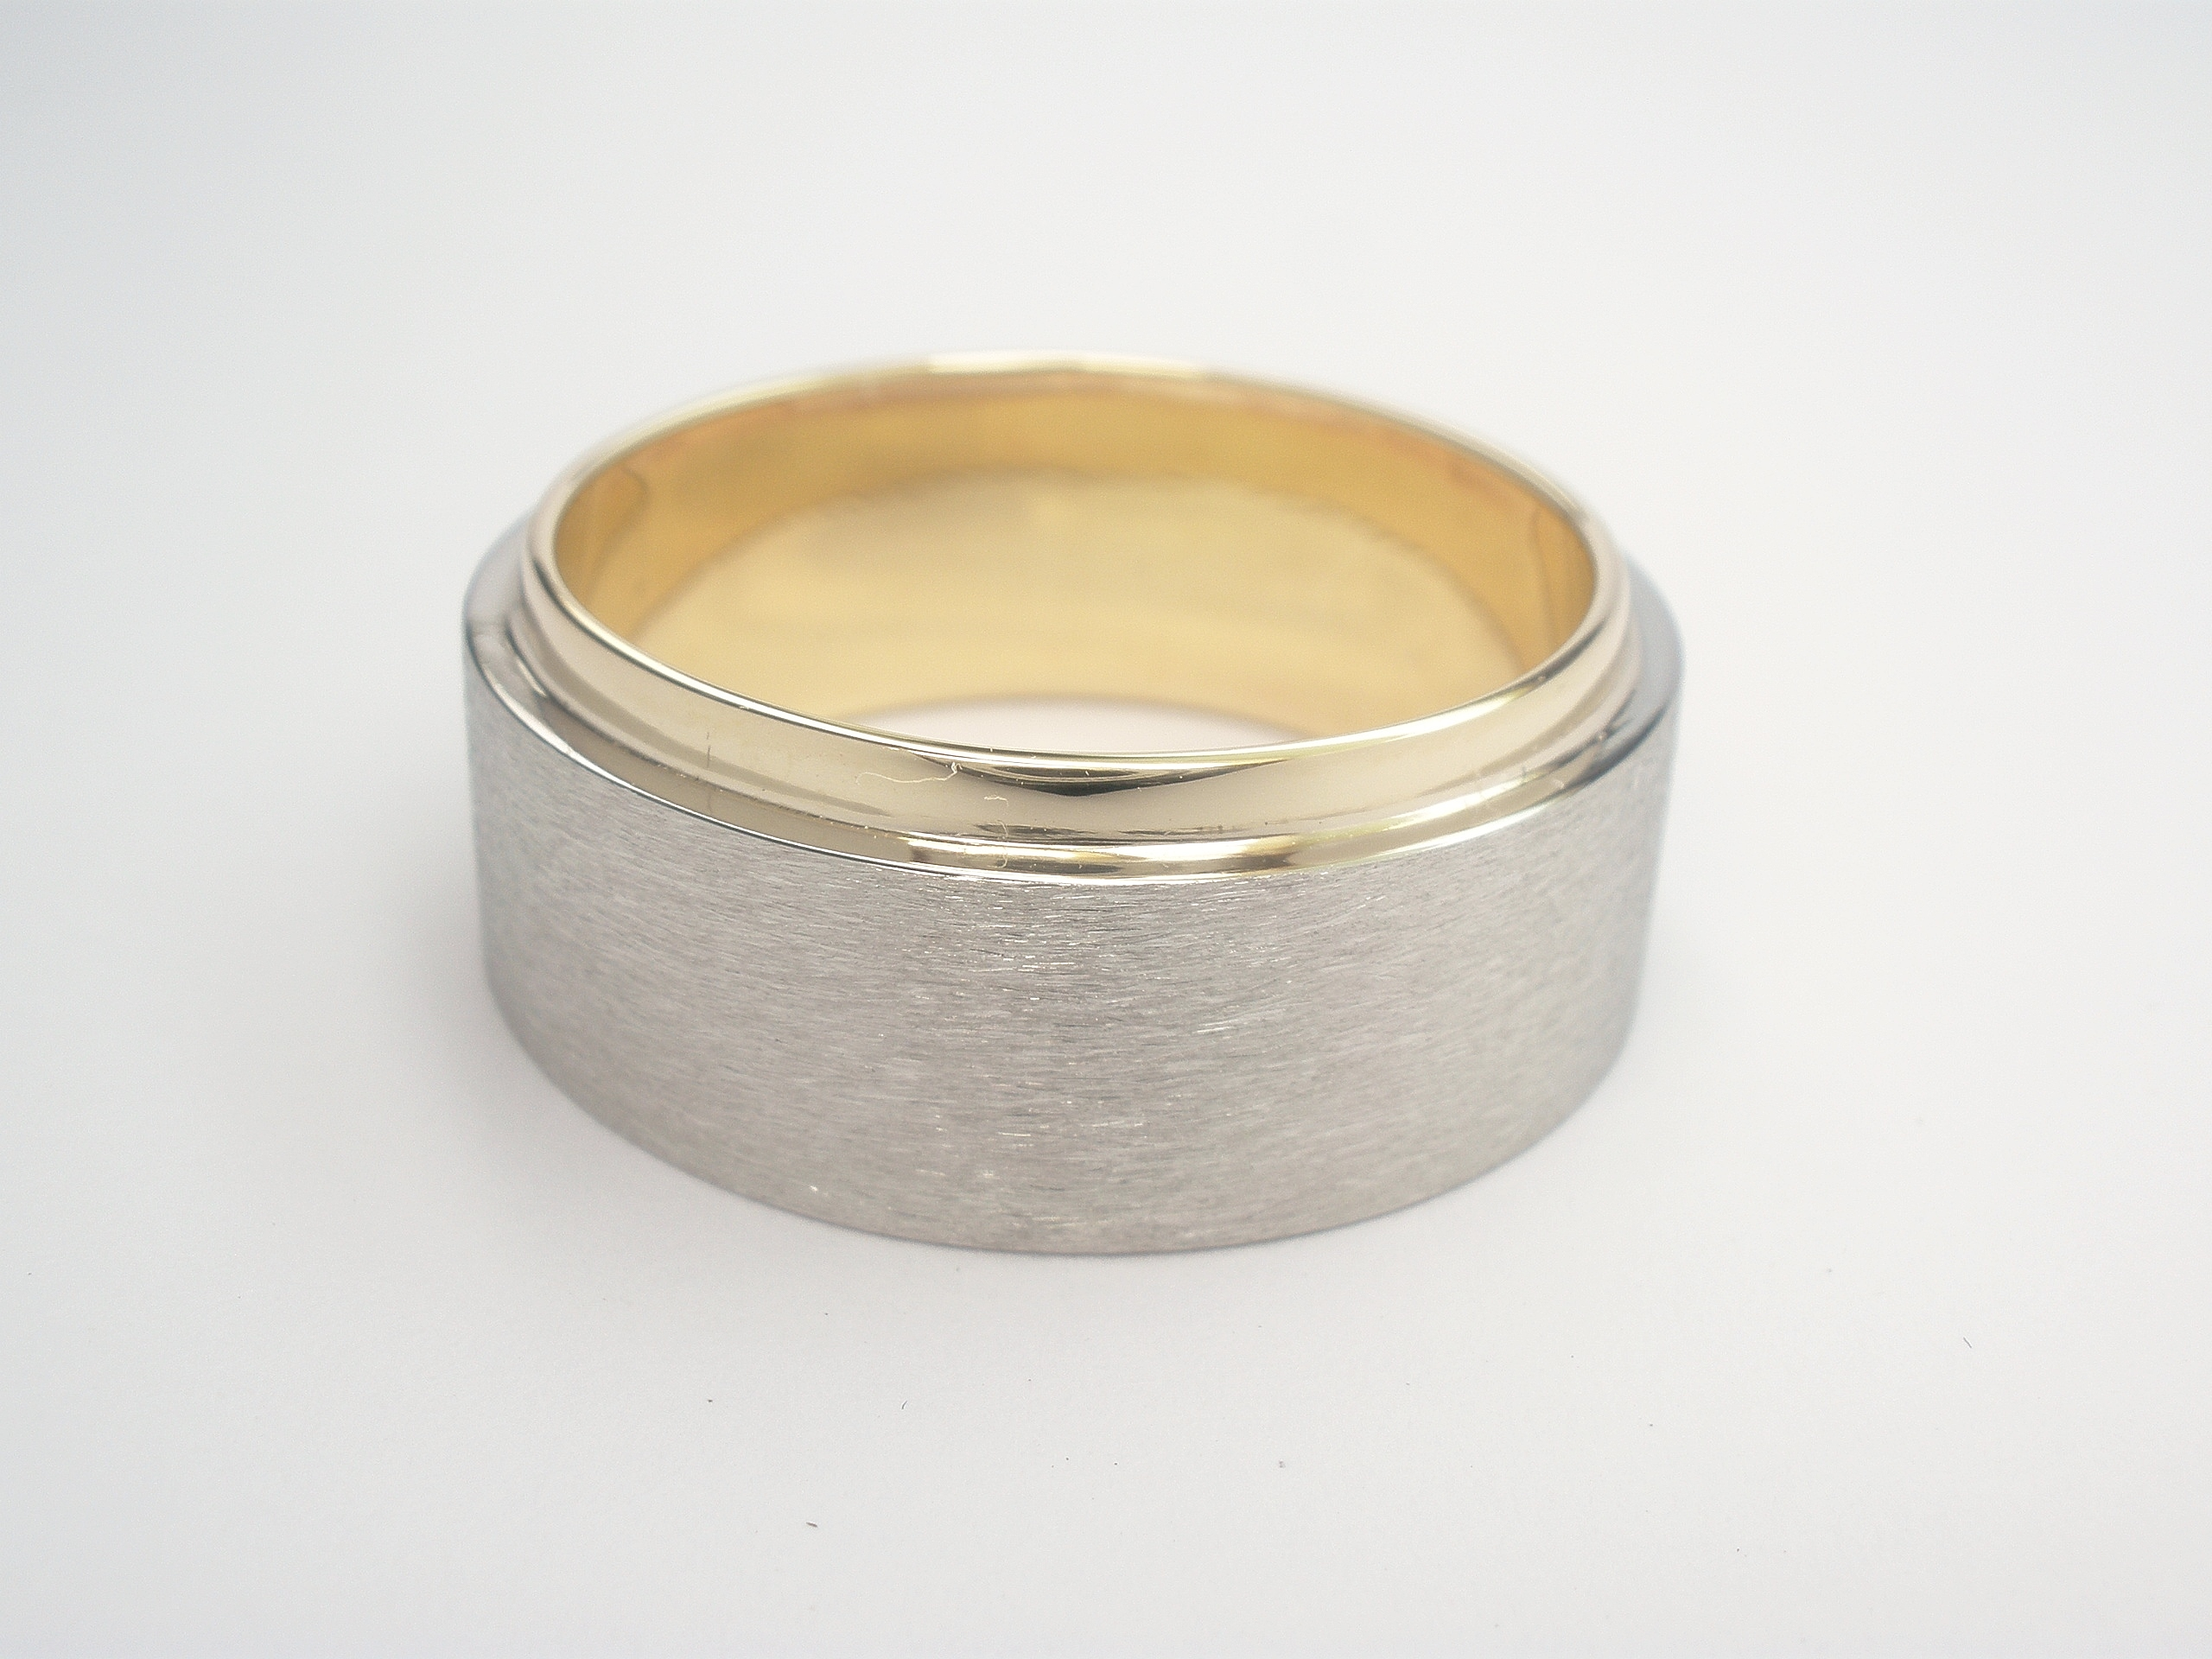 The gentleman had his father's 9ct. yellow gold wedding ring which he wished incorporated into his wedding ring although he wanted his ring to be predominantly white metal. Although the father's ring was very wide it suited the clients finger allowing Alan to size to fit then overlay a palladium band to 75% of the width allowing the 9ct. yellow gold inner ring to show.